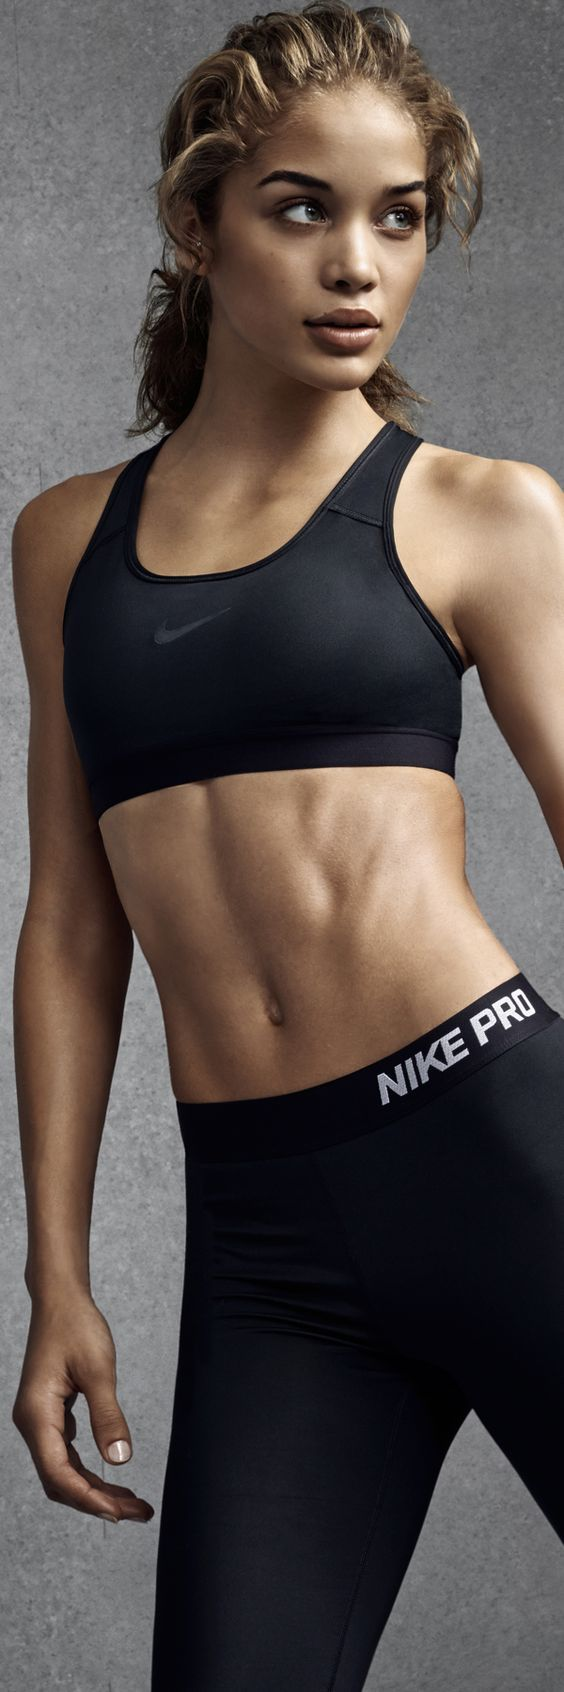 ♡ Women's Nike Store | Workout Clothes | Leggings | Good Fashion Blogger...